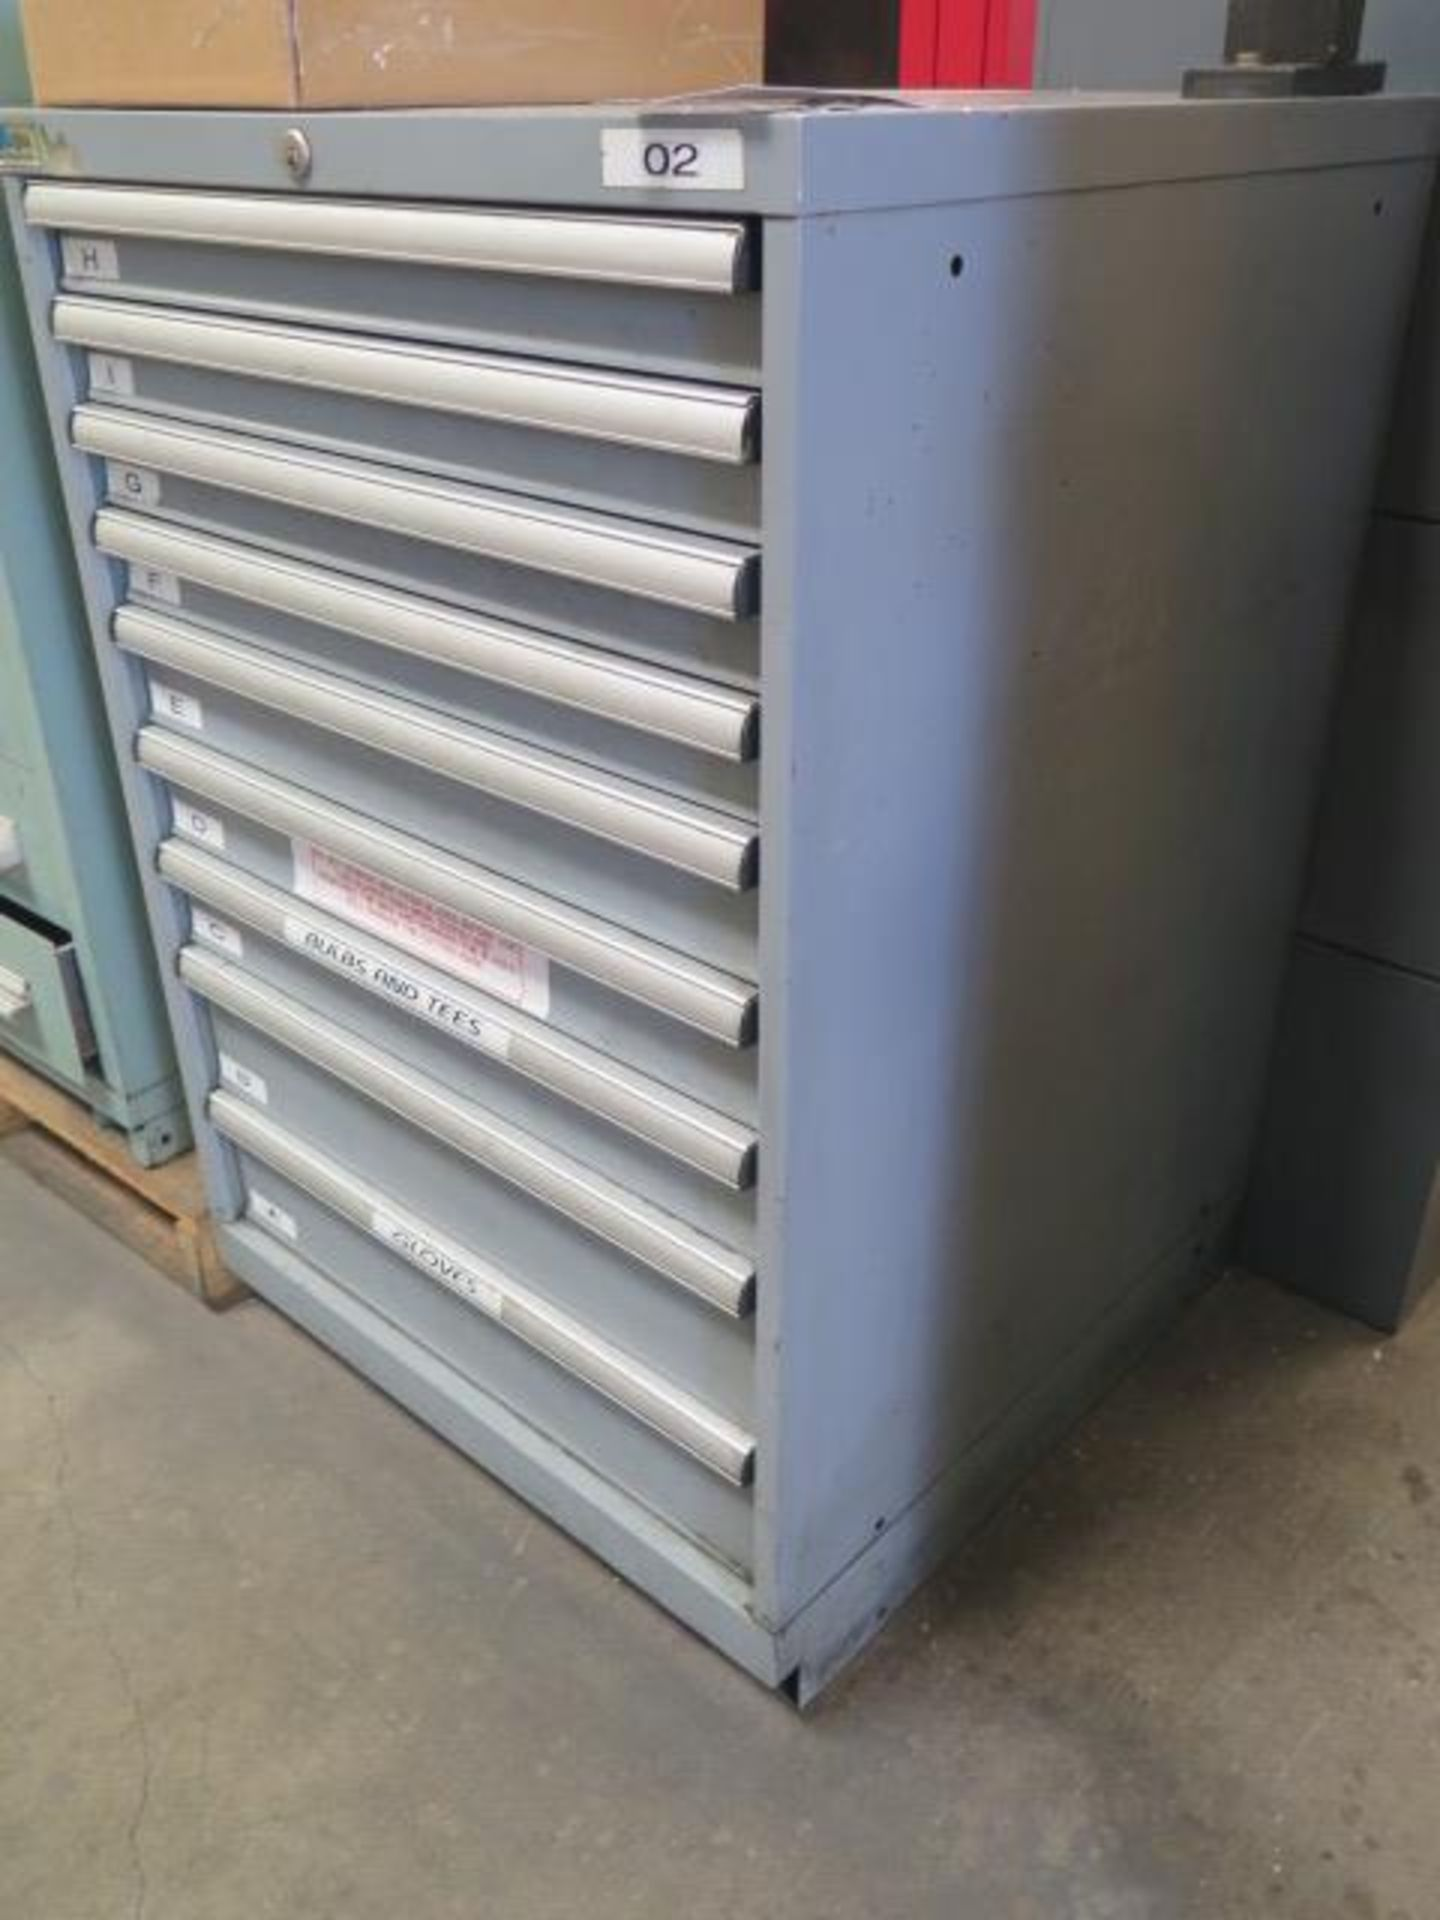 Lista 9-Drawer Tooling Cabinet w/ Mill Clamps (SOLD AS-IS - NO WARRANTY) - Image 2 of 11